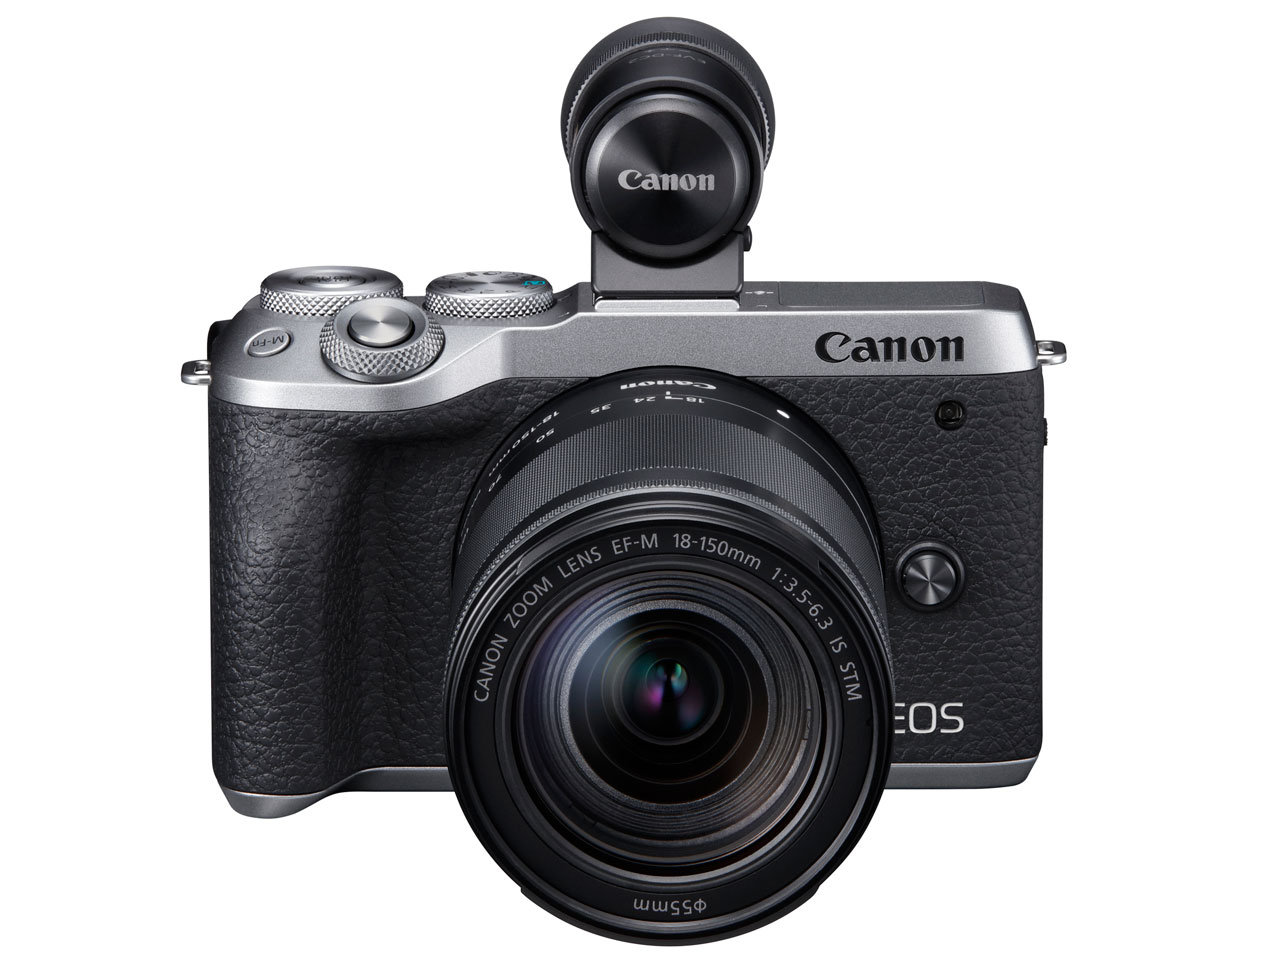 Canon EOS M6 Mark II EF-M18-150 IS STM レンズEVFキット [シルバー]【お取り寄せ(メーカー取り寄せ/予約受付中)】※1~2ヶ月